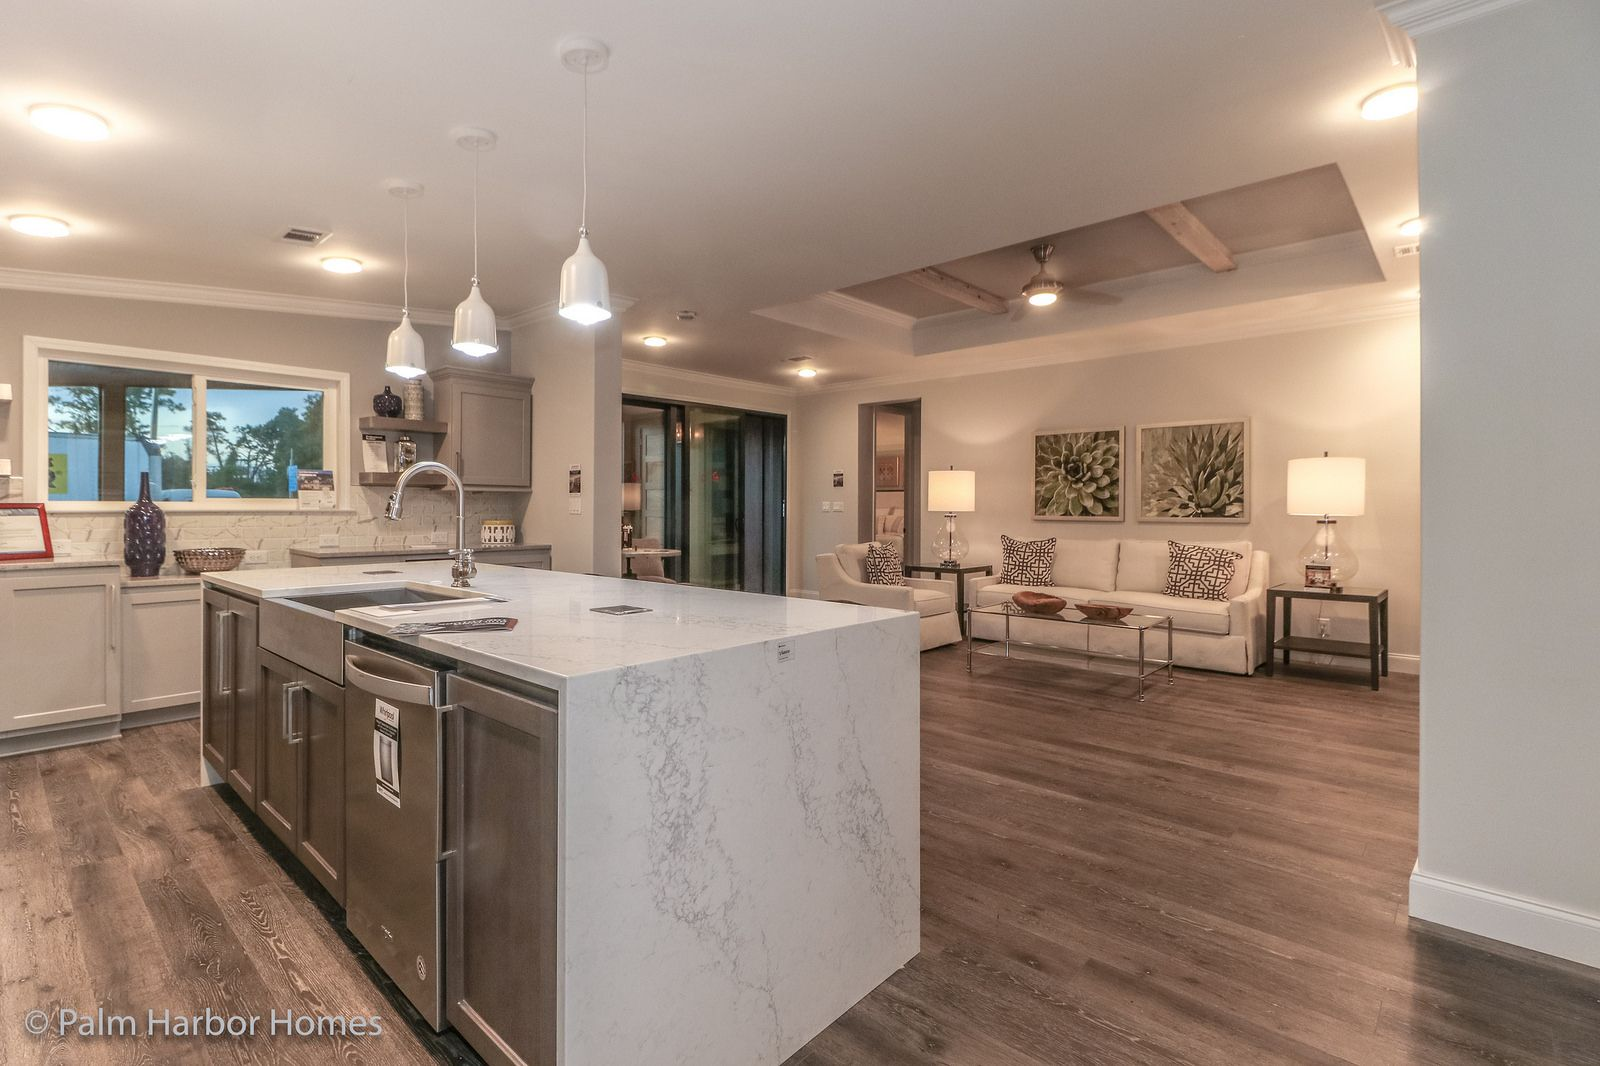 Pin On The Best Of Palm Harbor Homes